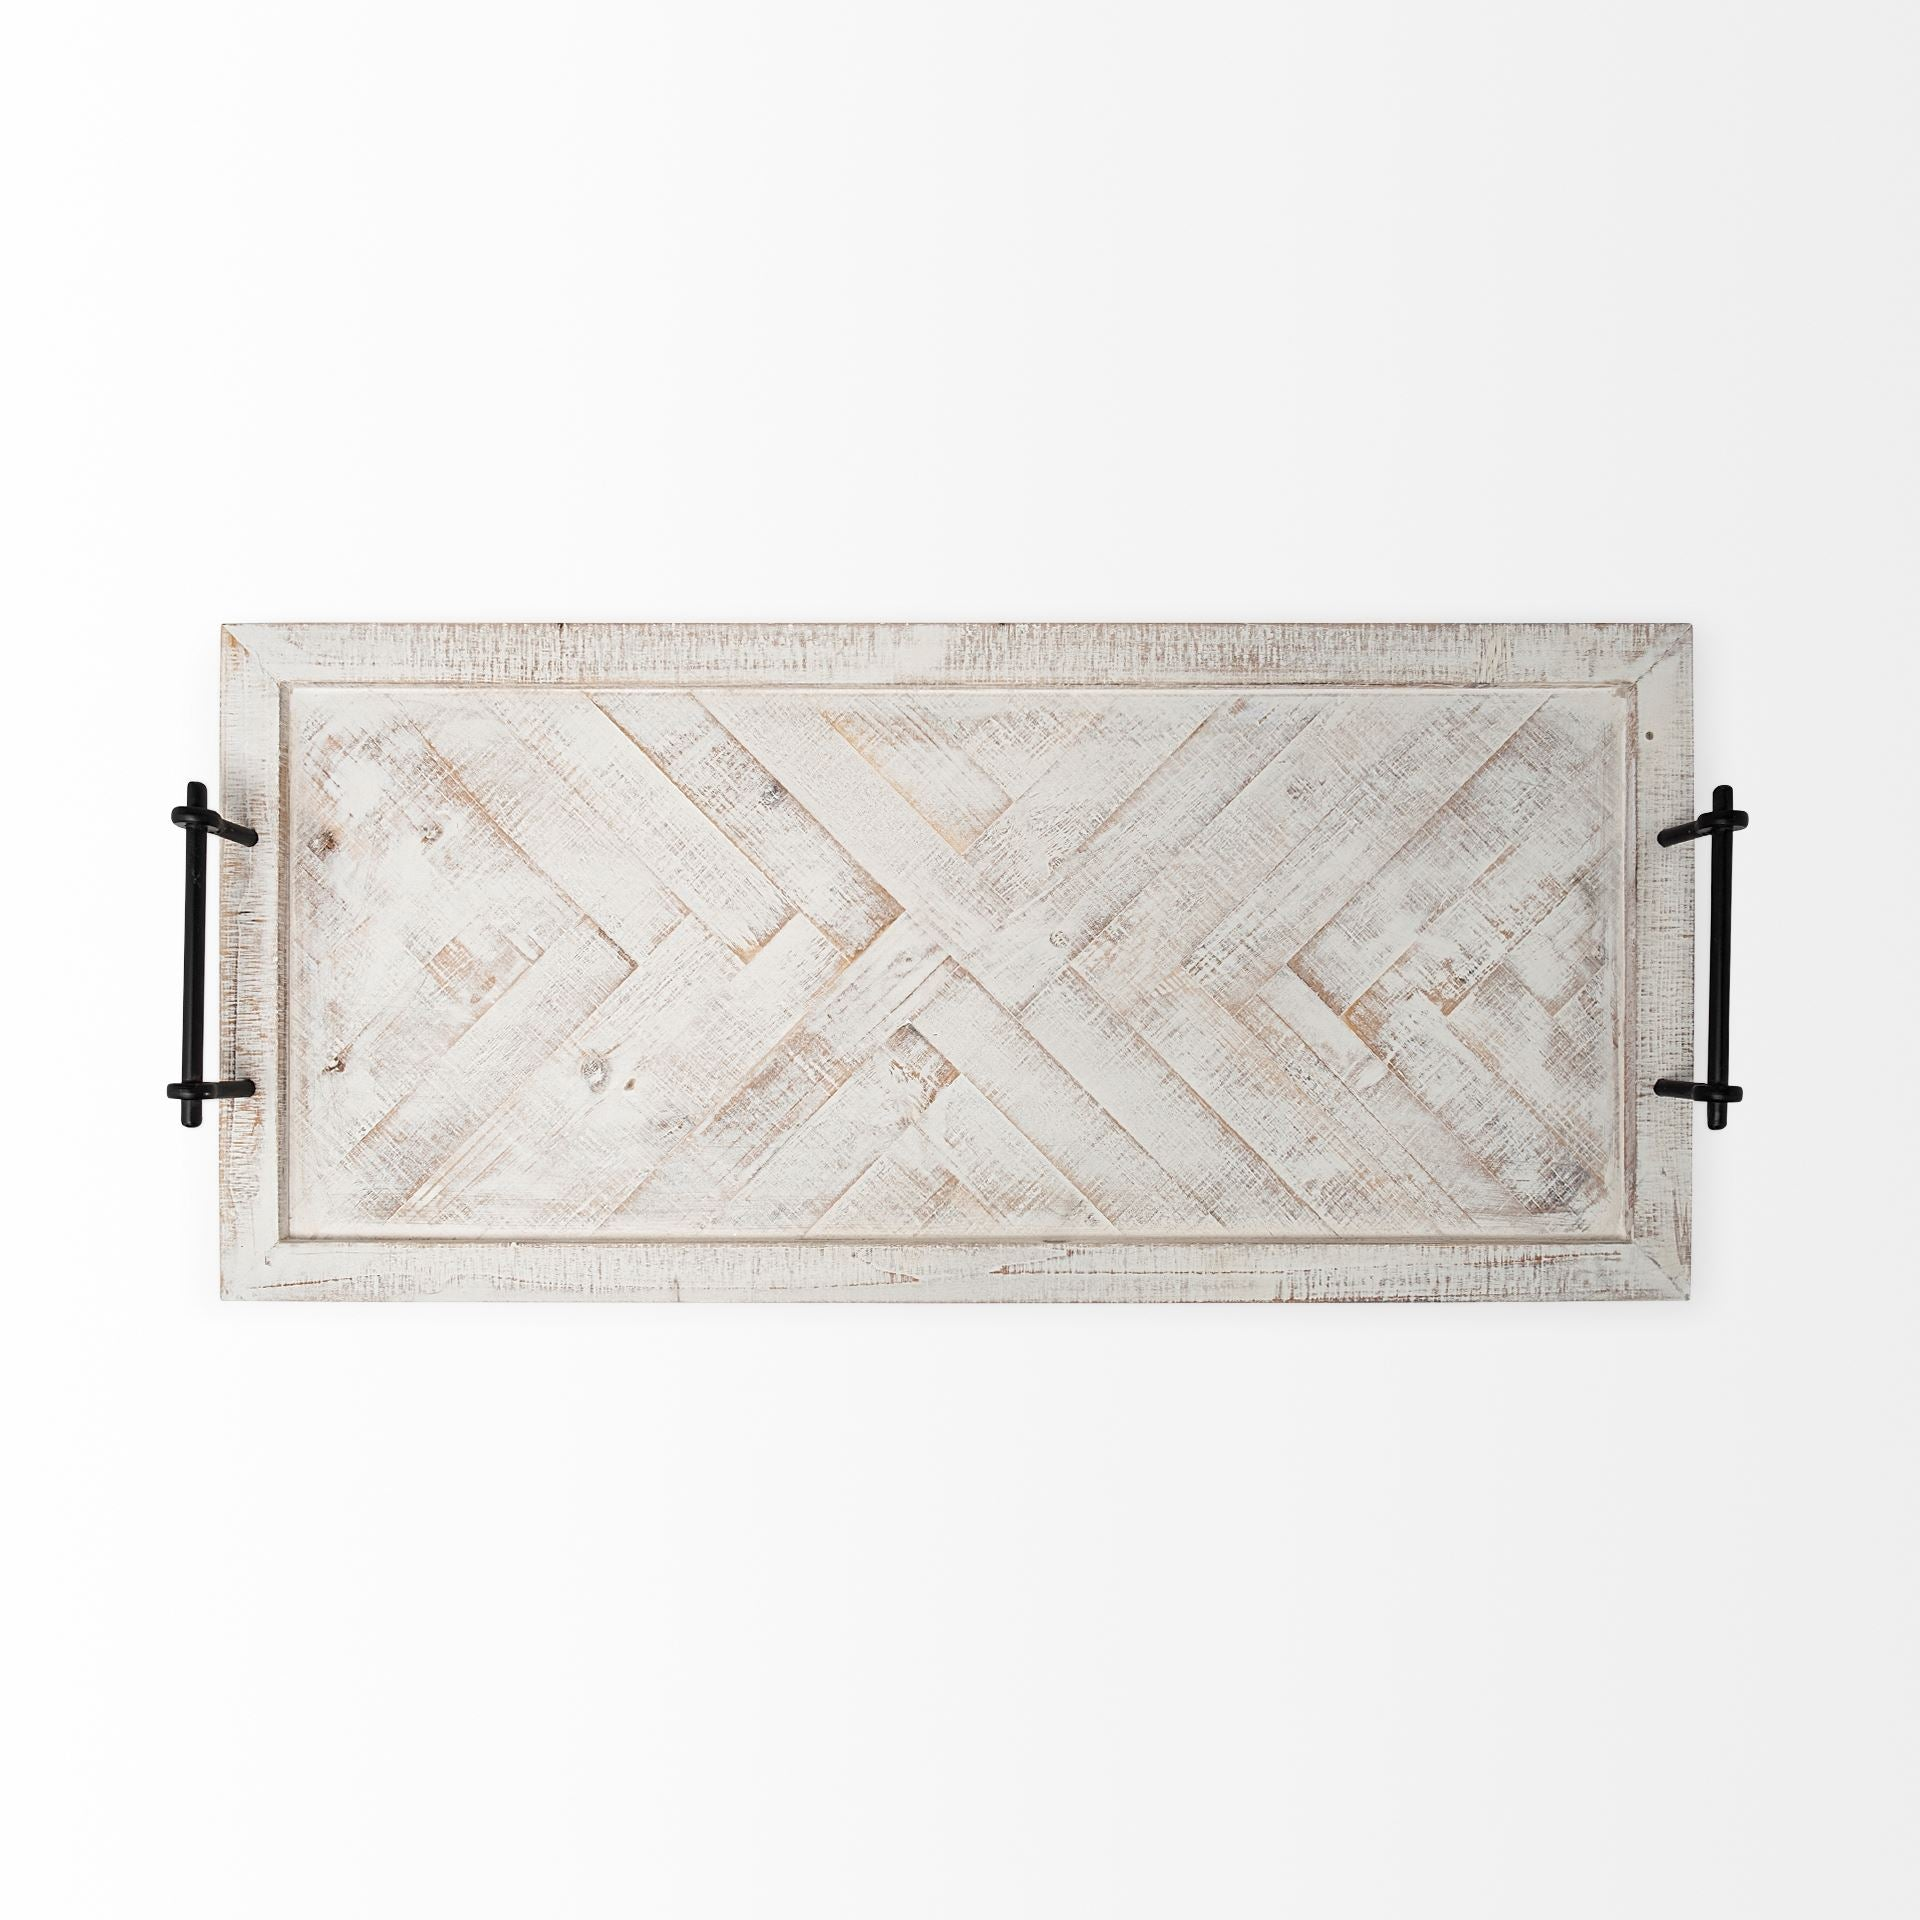 Whitewashed Tone Wood With Herringbone Pattern With Metal Raised Edges Tray